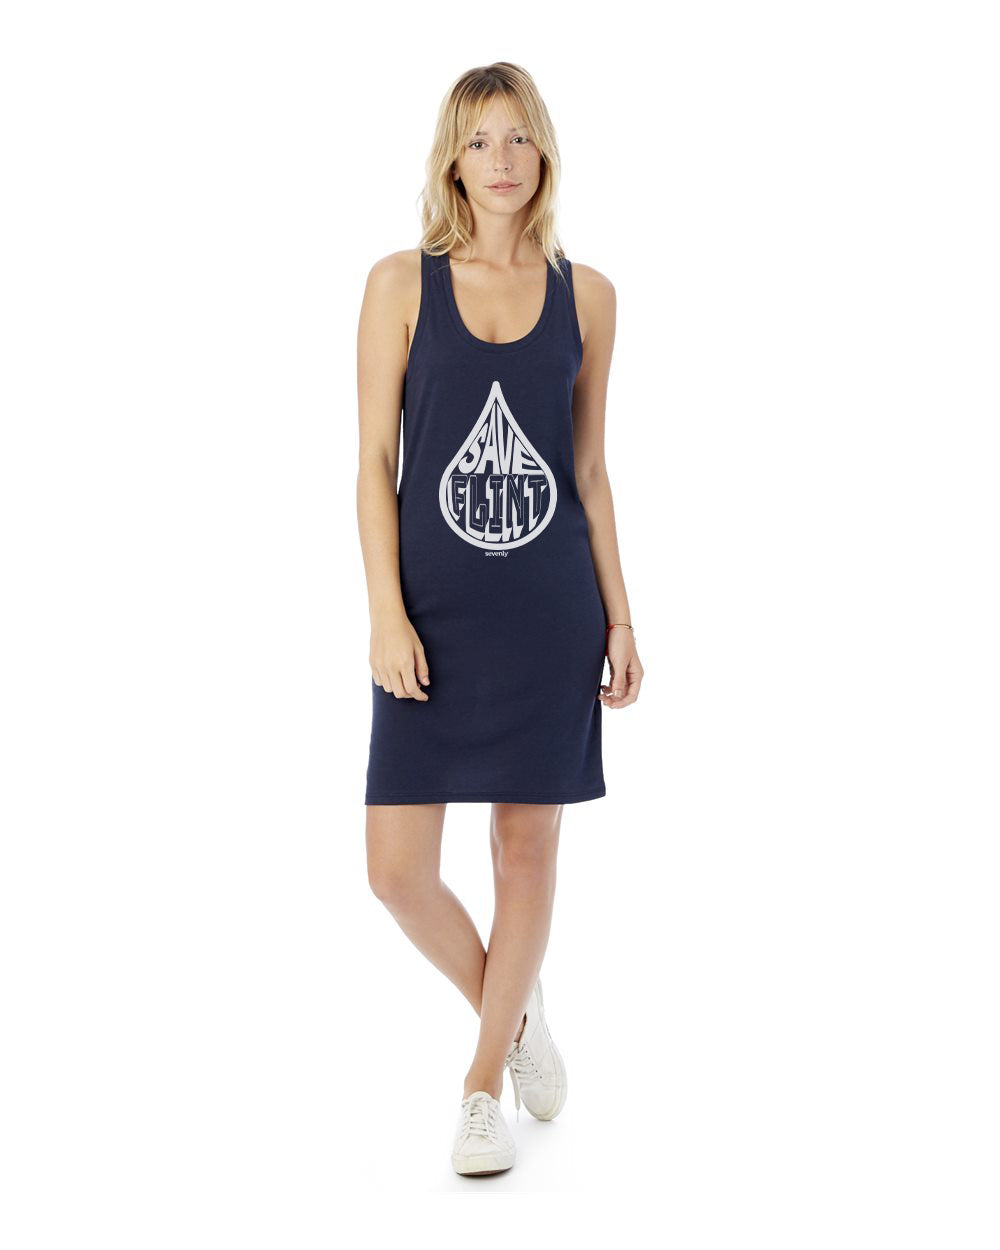 Save Flint Water - Women's Cotton Modal Jersey Tank Dress